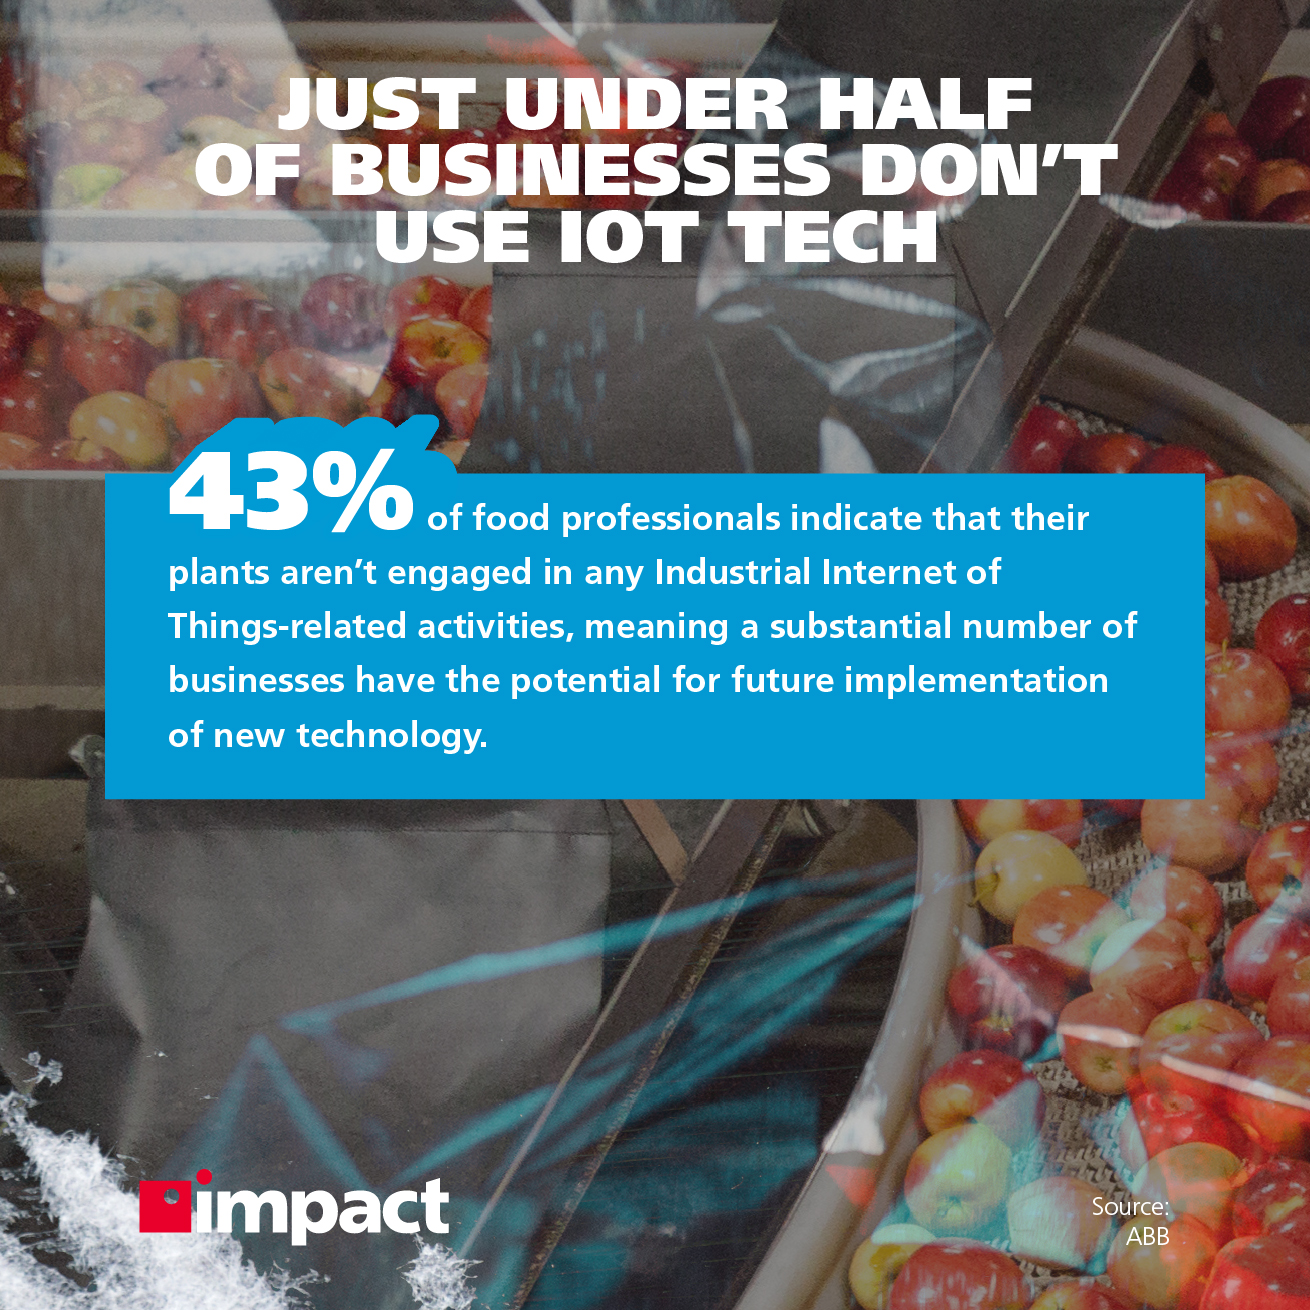 Just under half of business don't use IoT tech